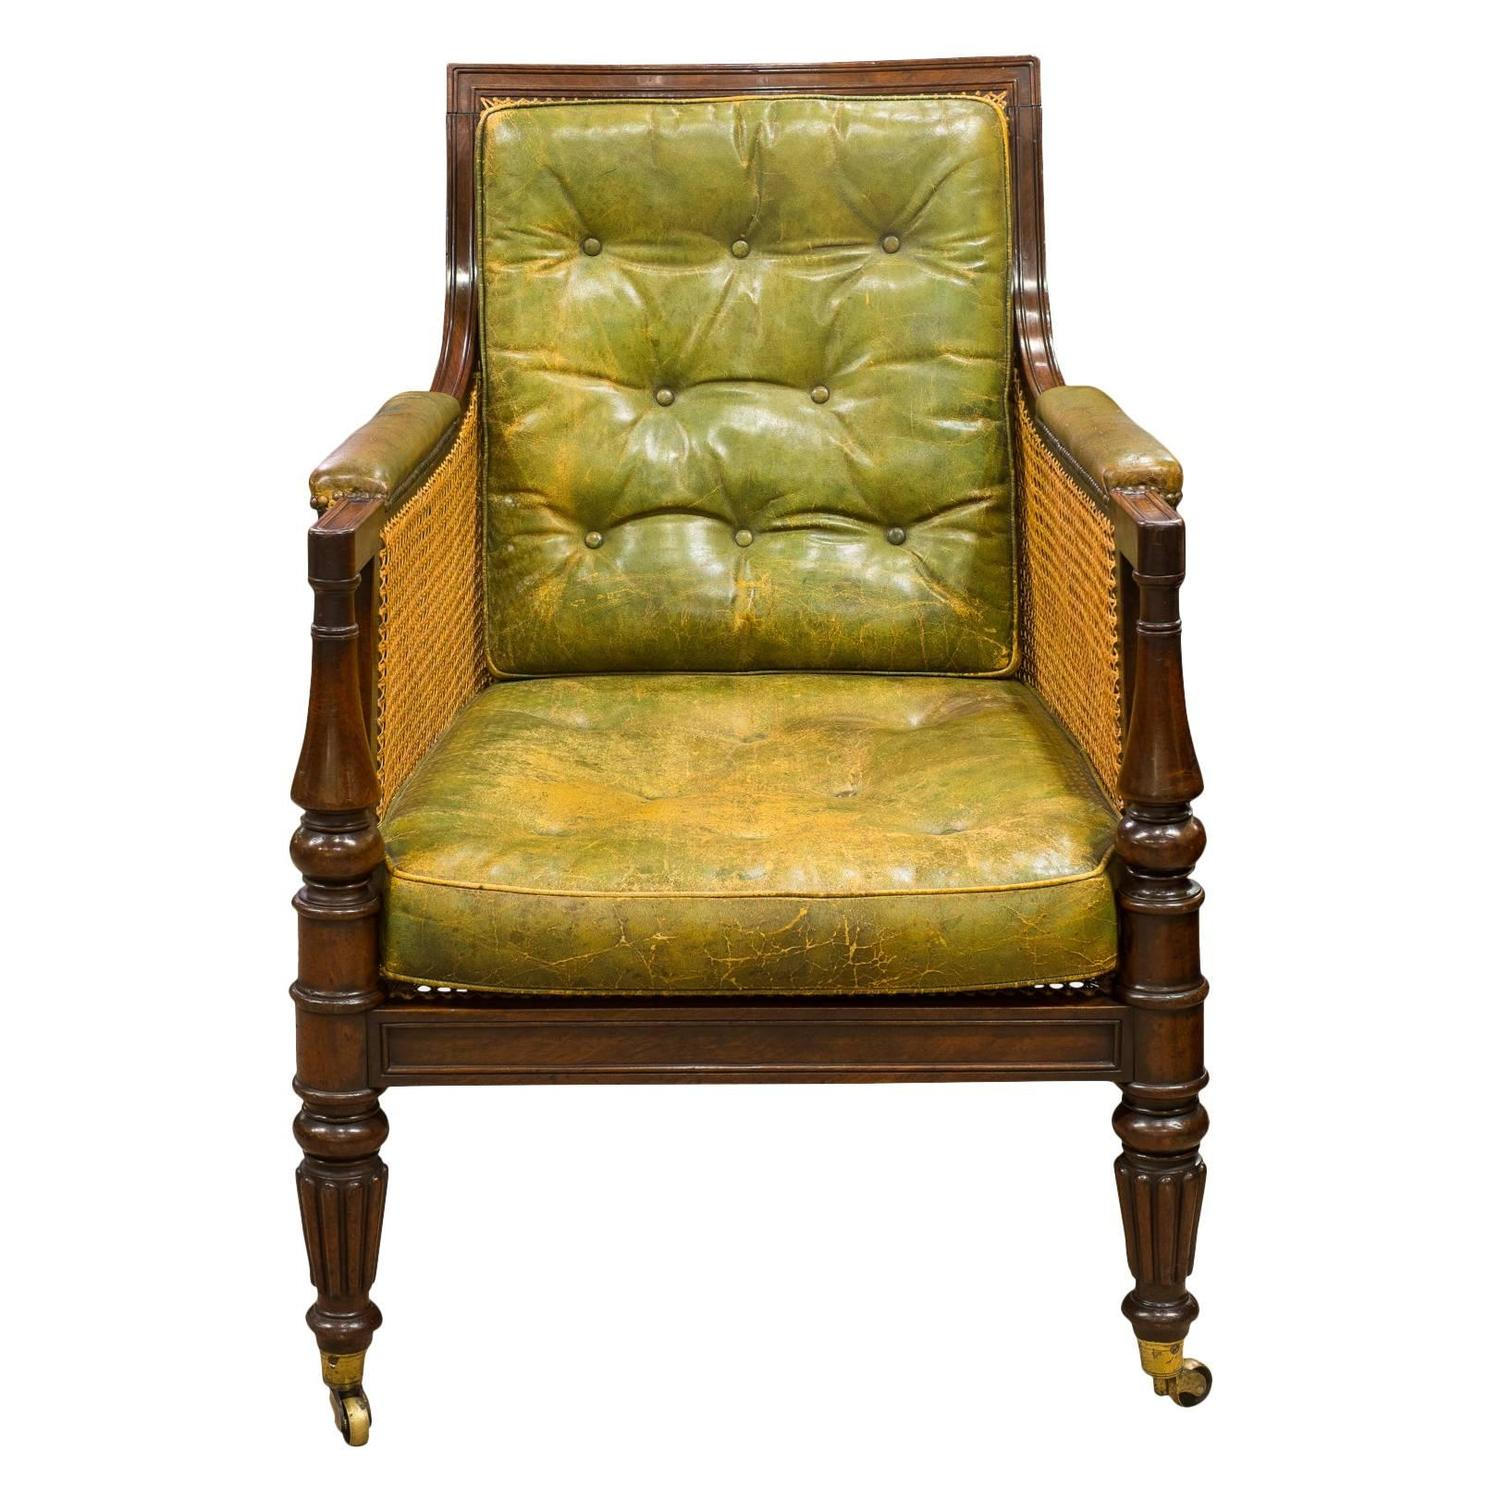 Regency Bergere Mahogany Library Chair For Sale at 1stdibs